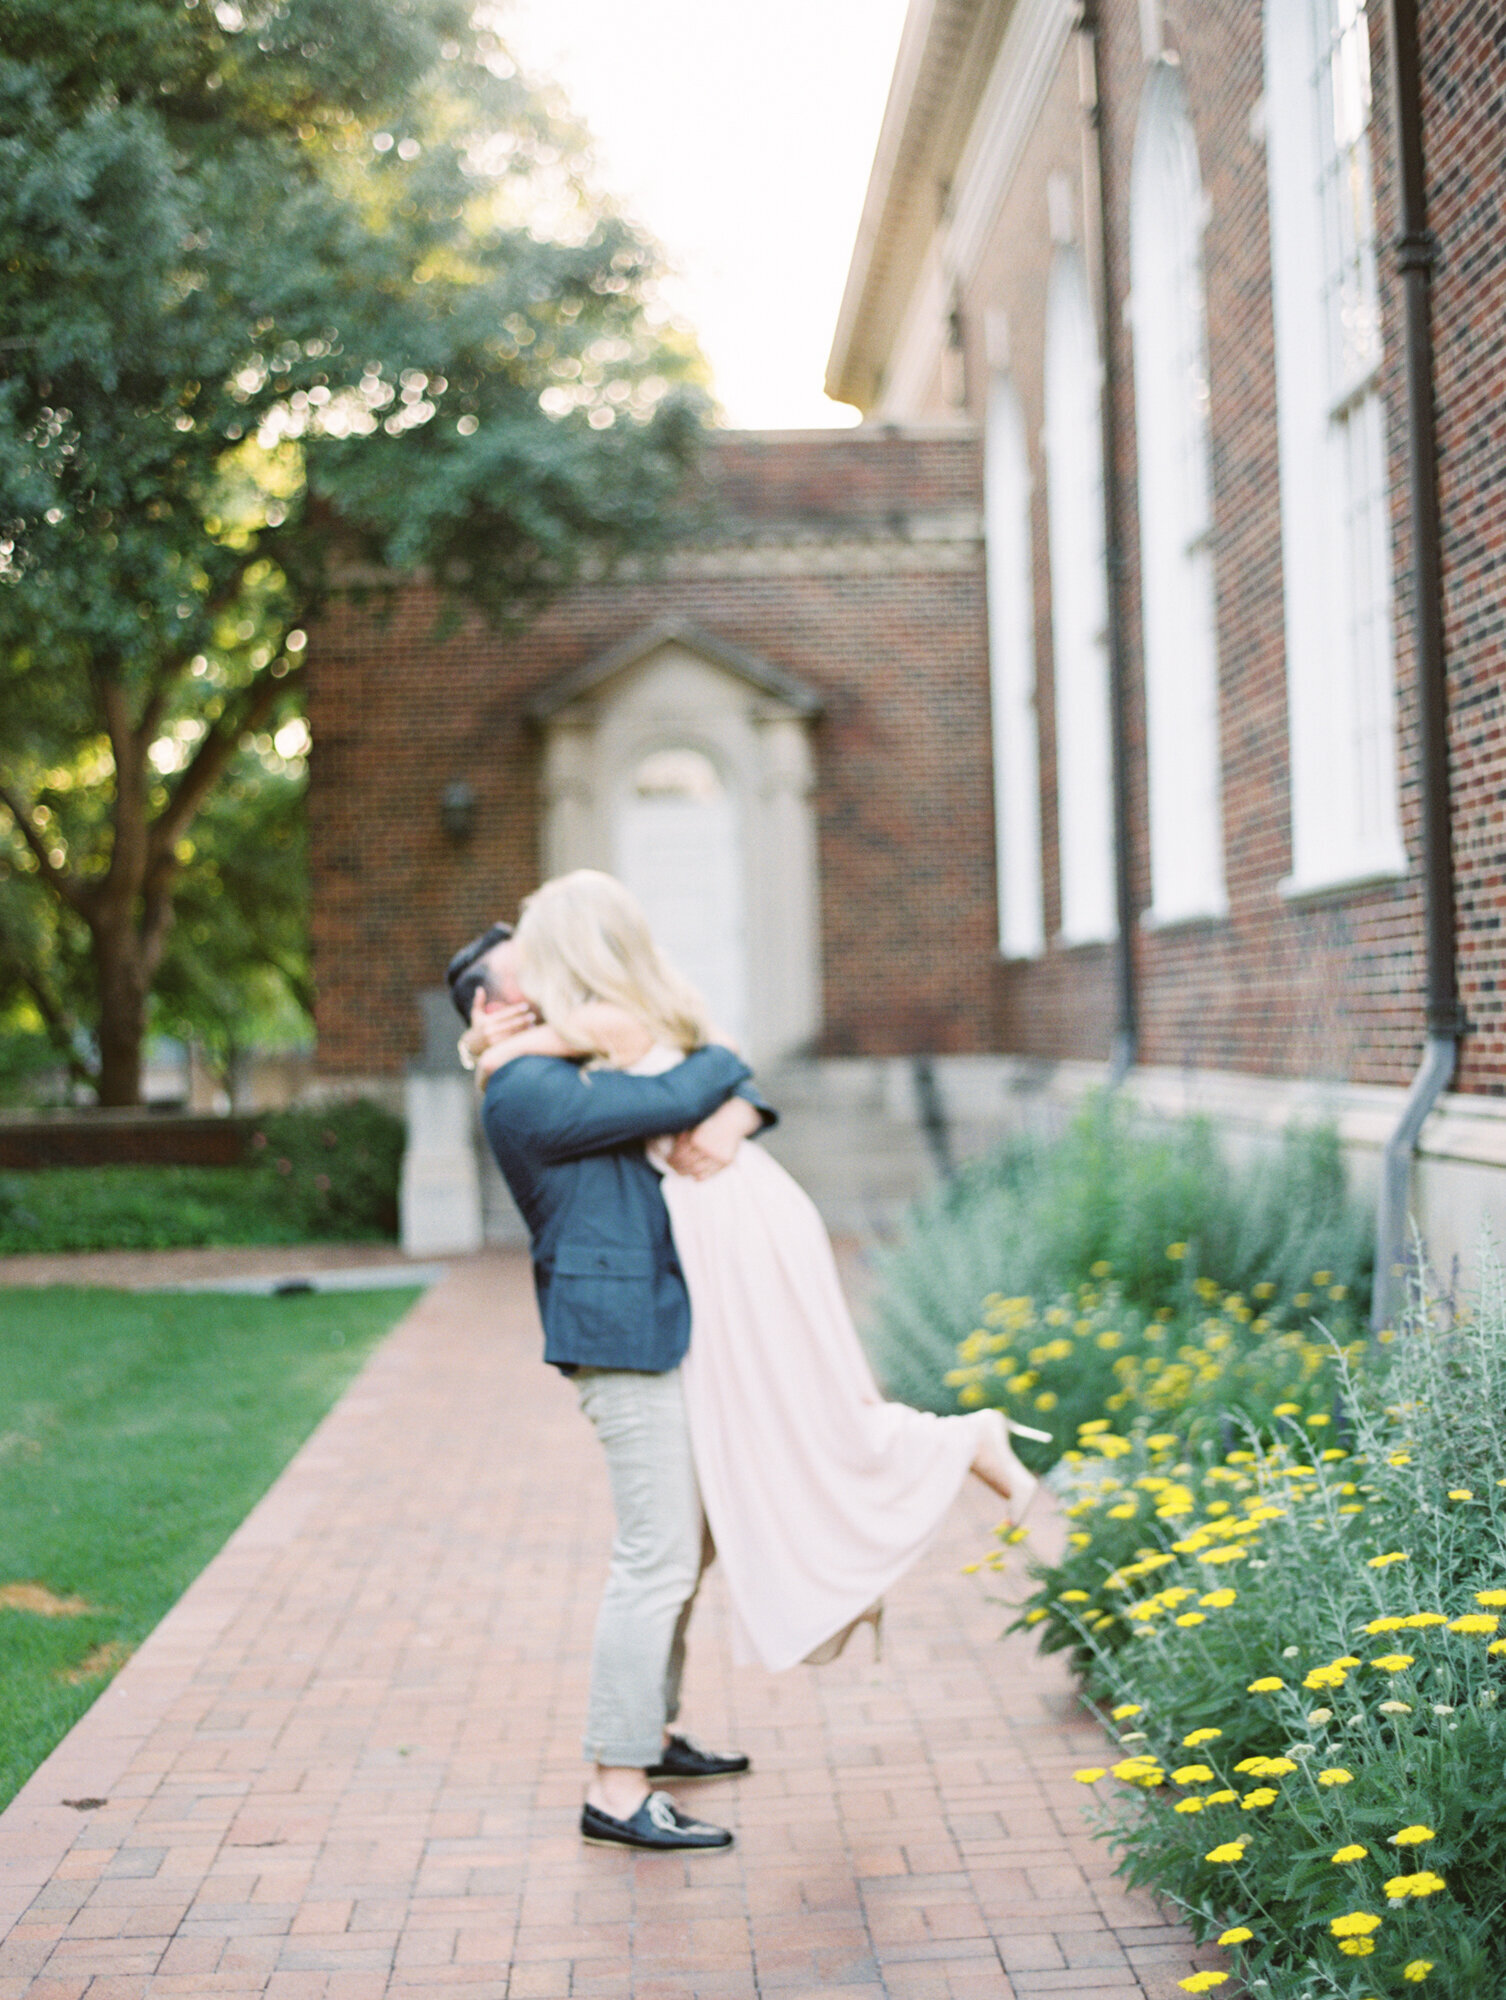 perkins_chapel_engagement_session_-8